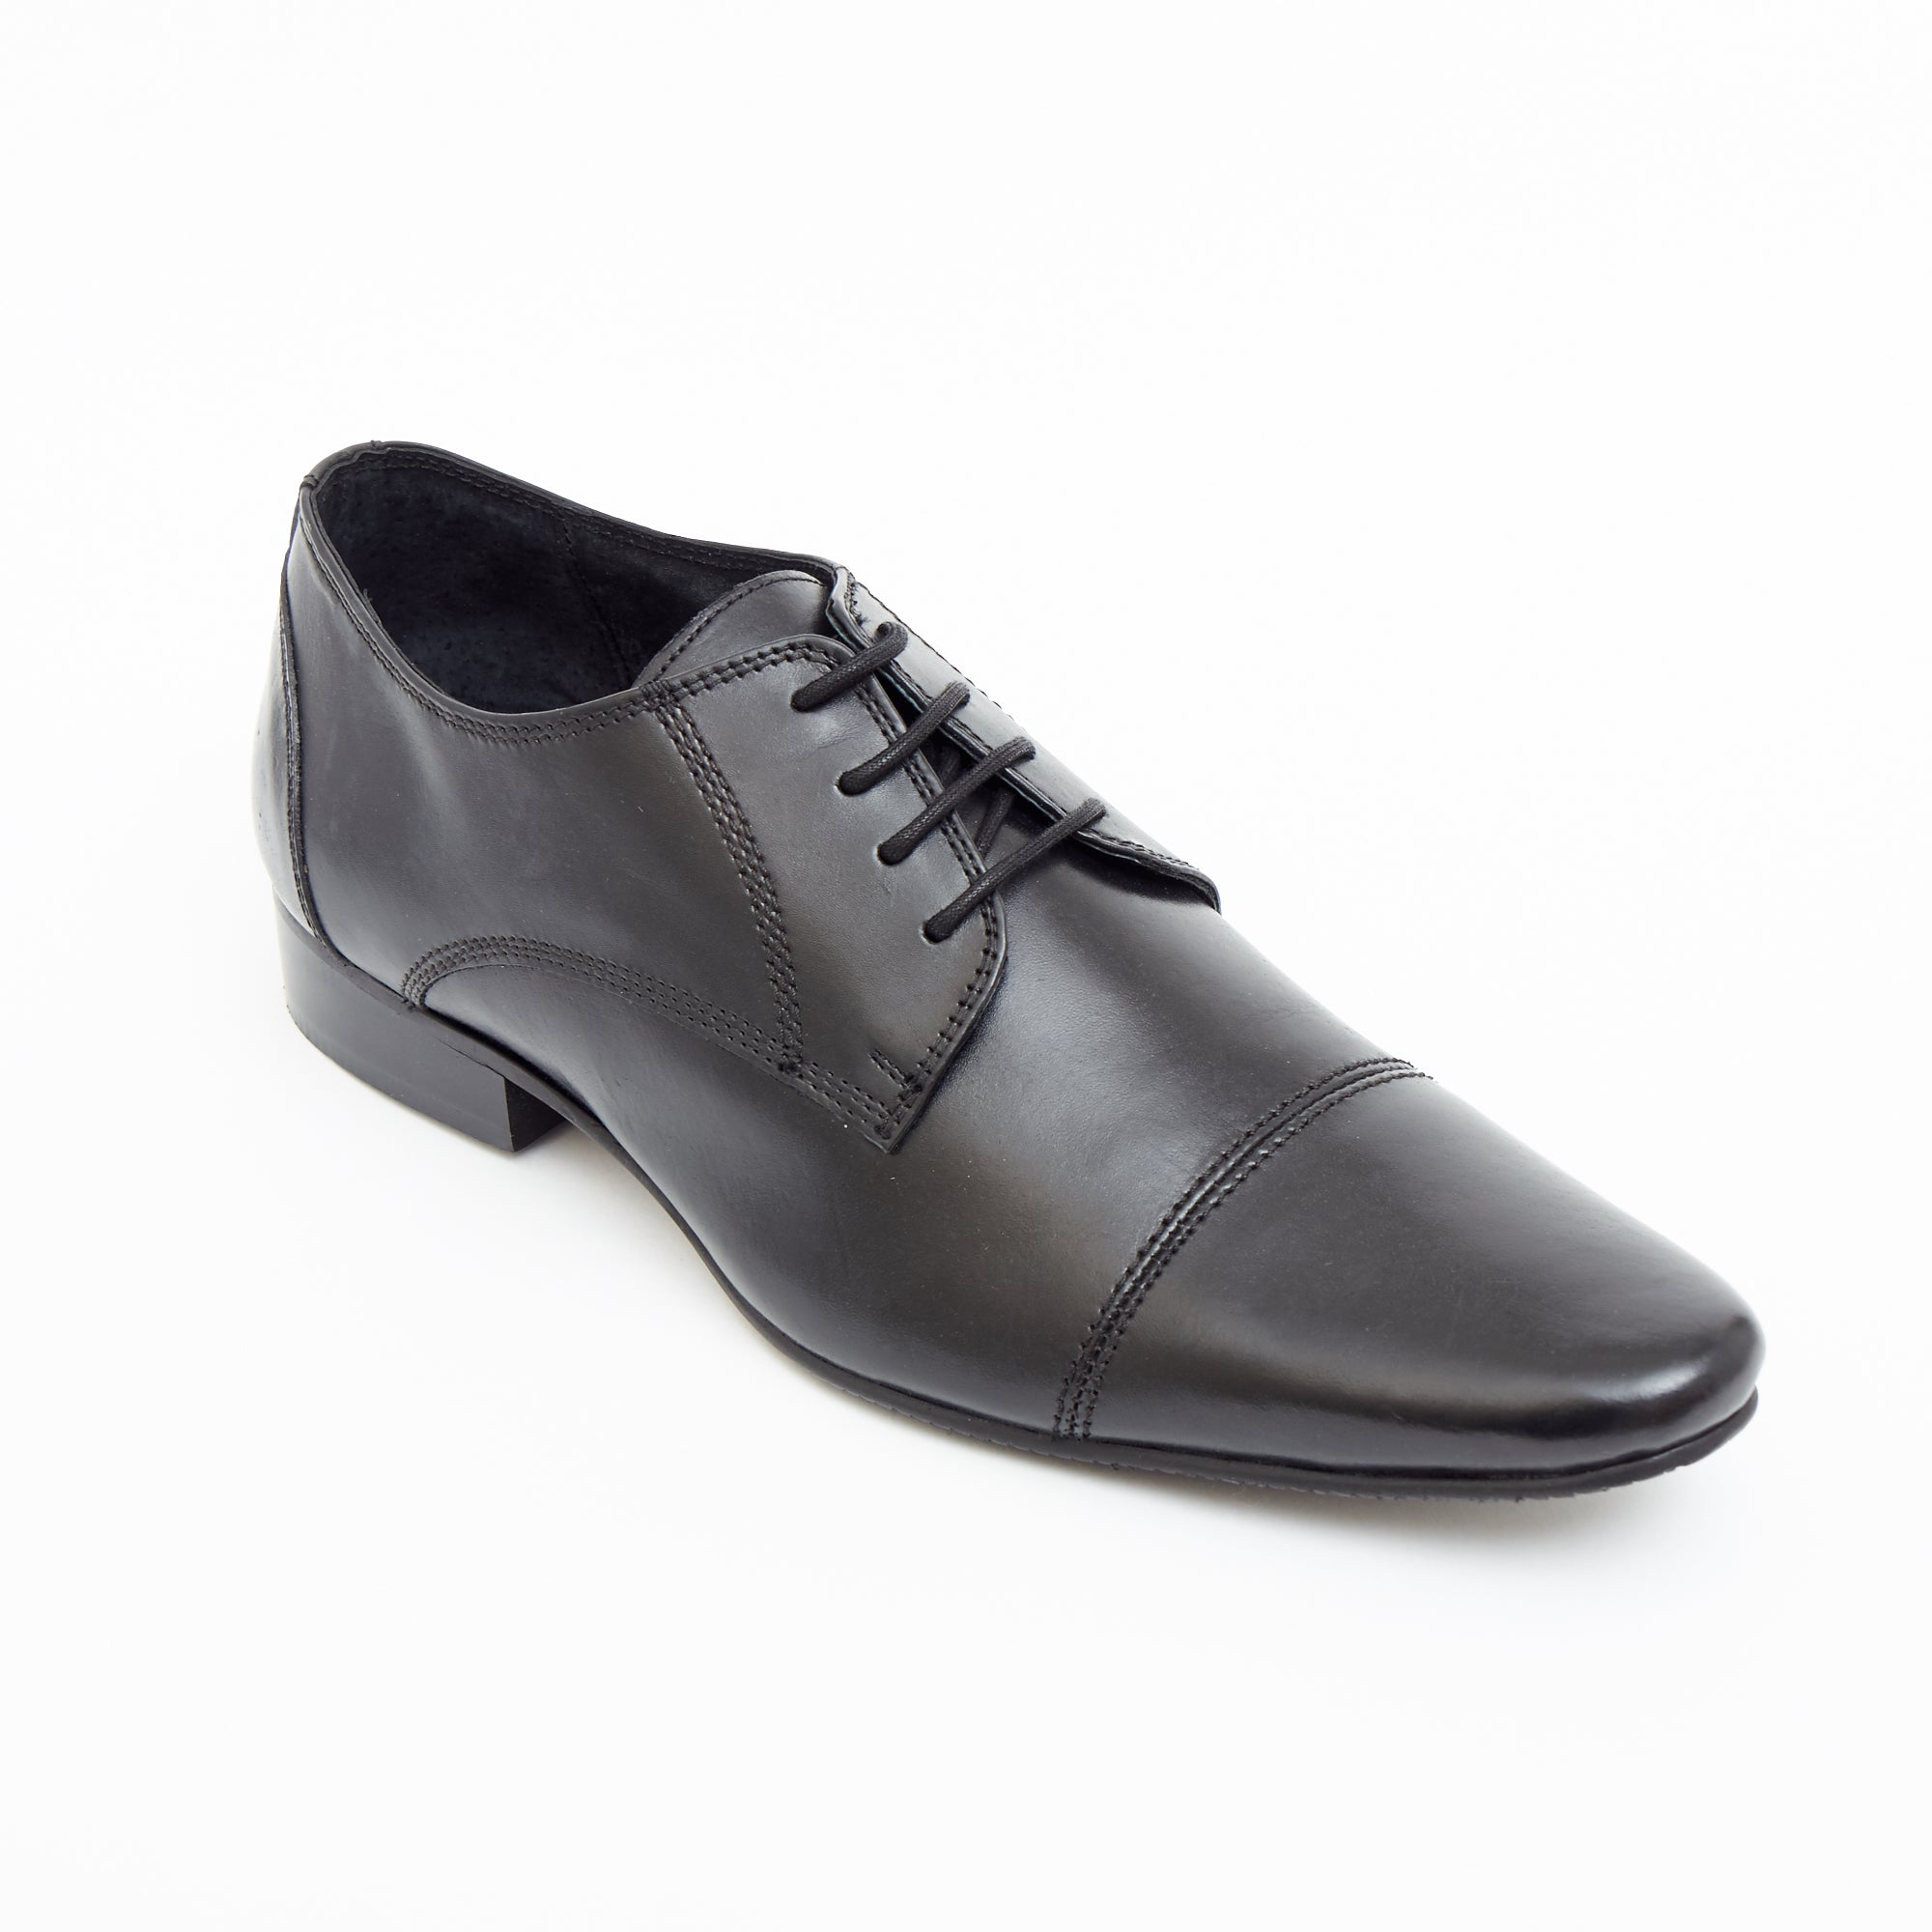 Mens Leather Formal Shoes -25202_Black